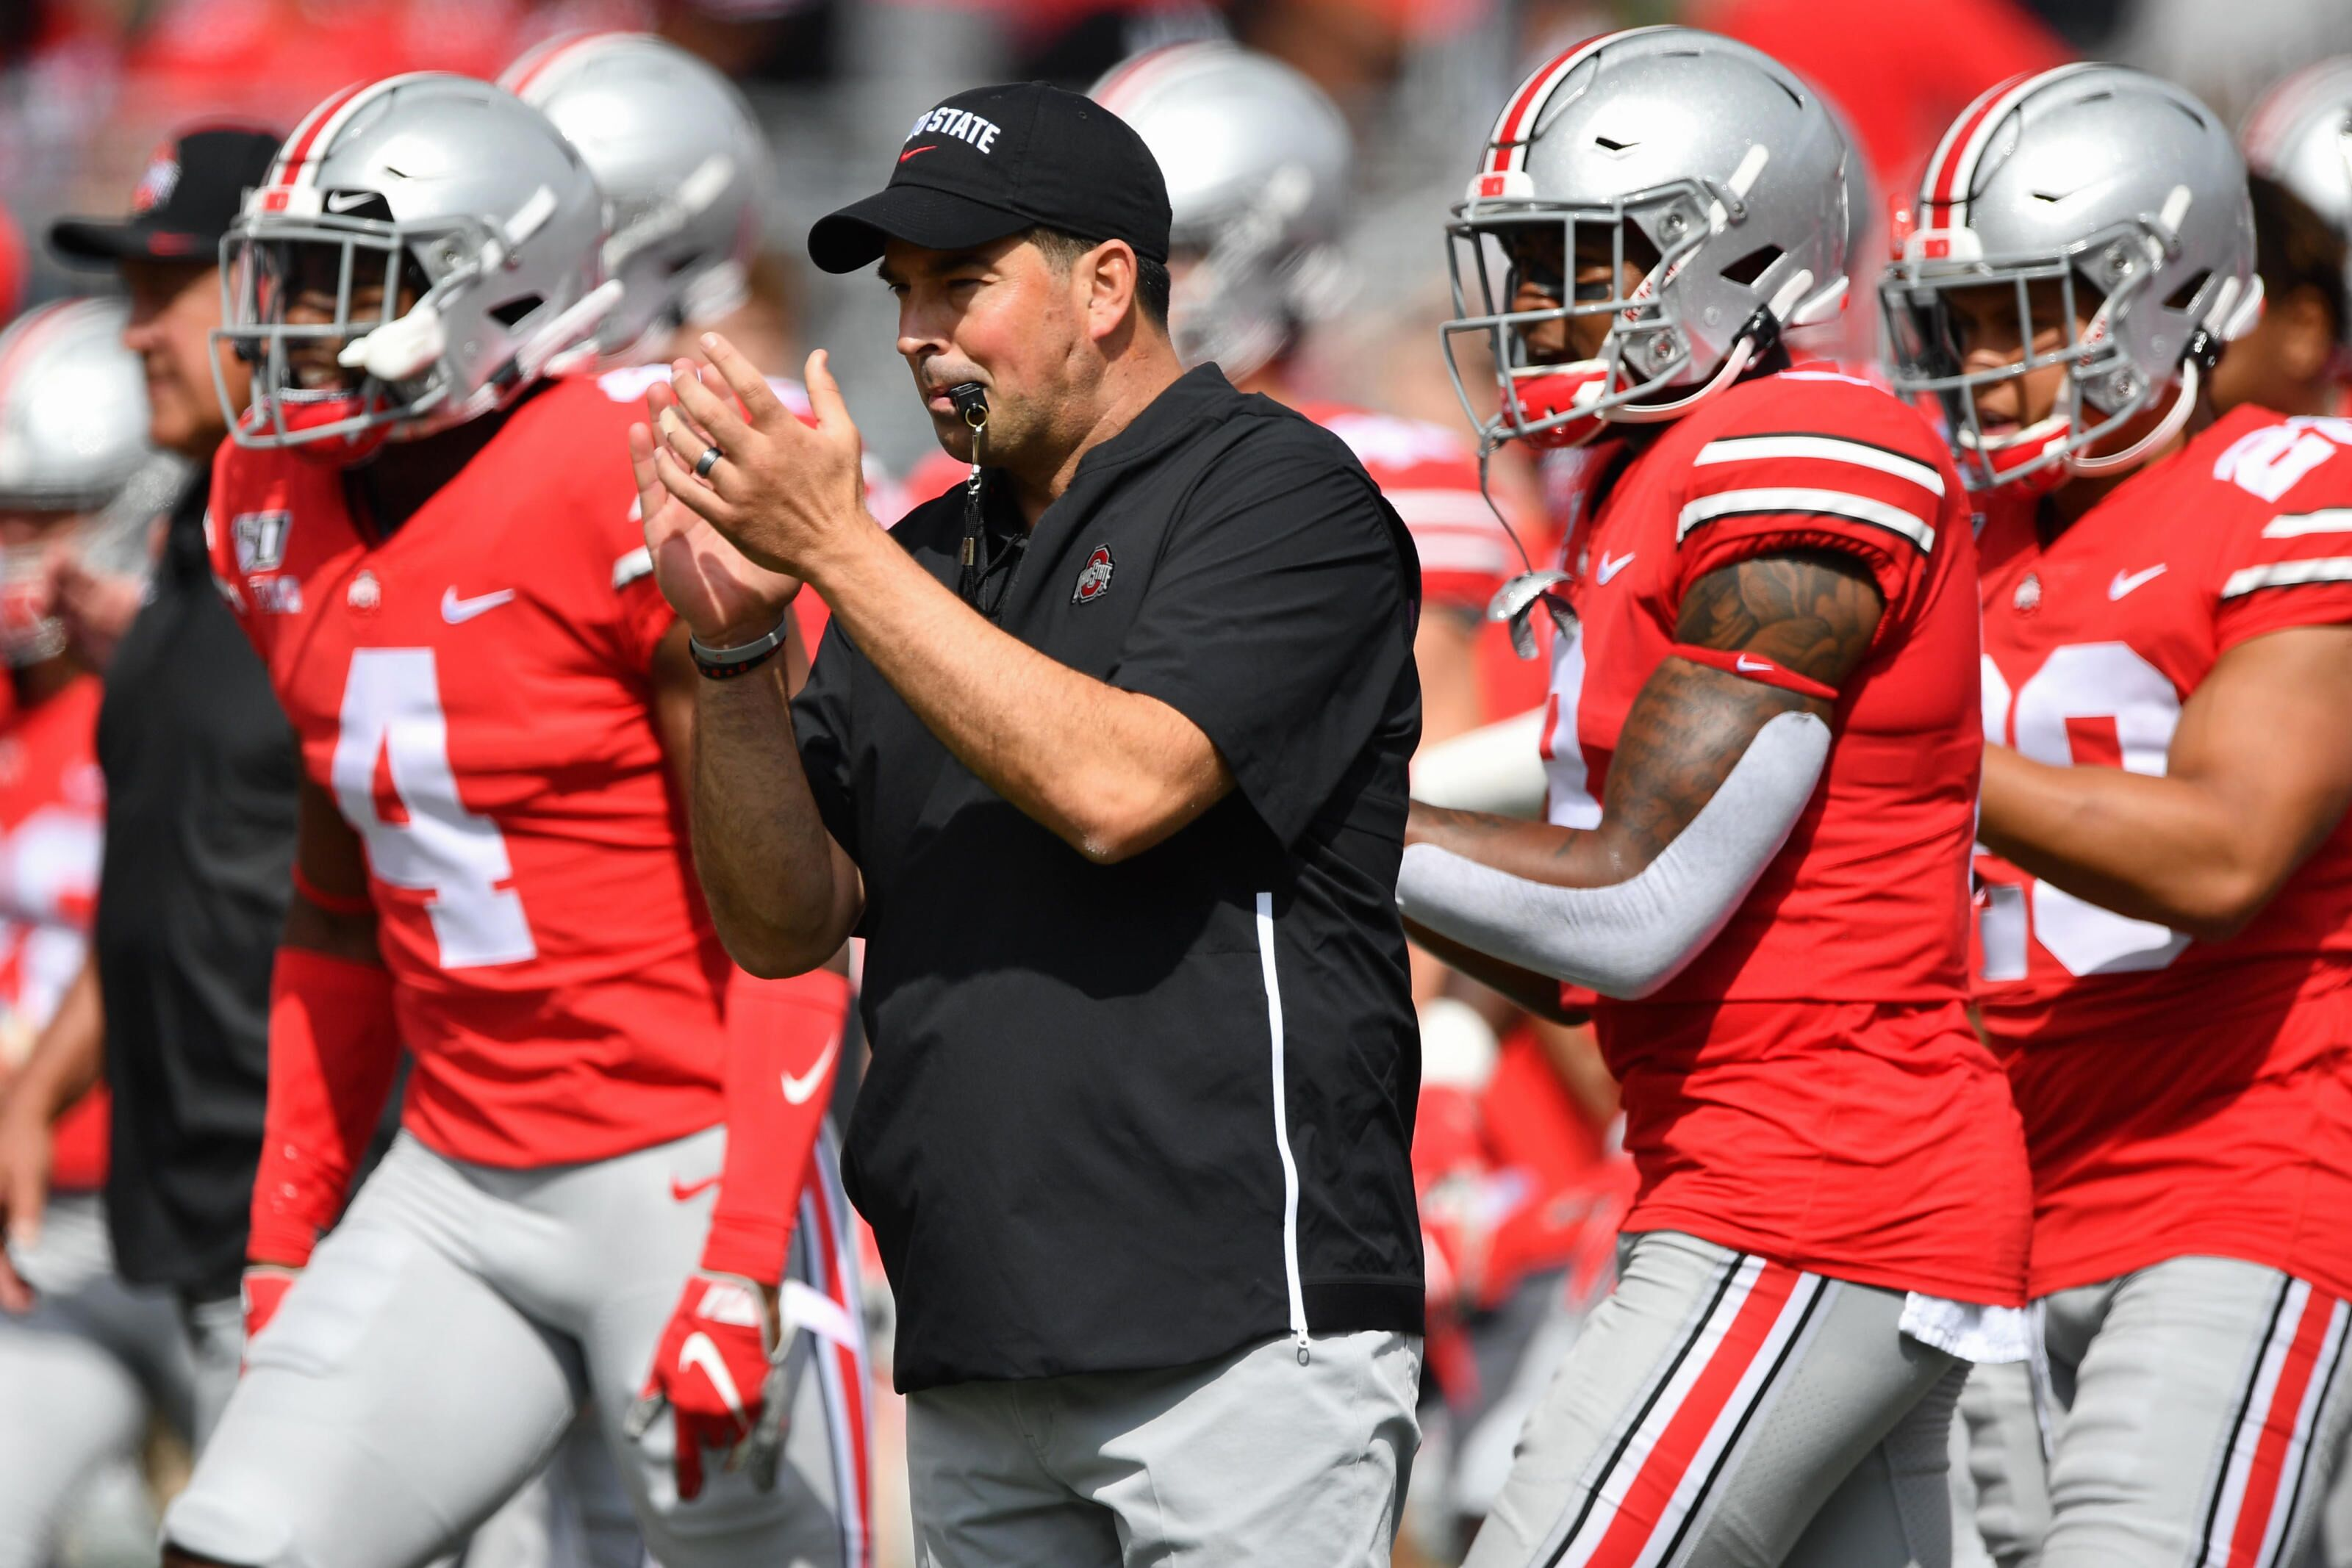 Ohio State Football: Buckeyes aren't just winning but dominating